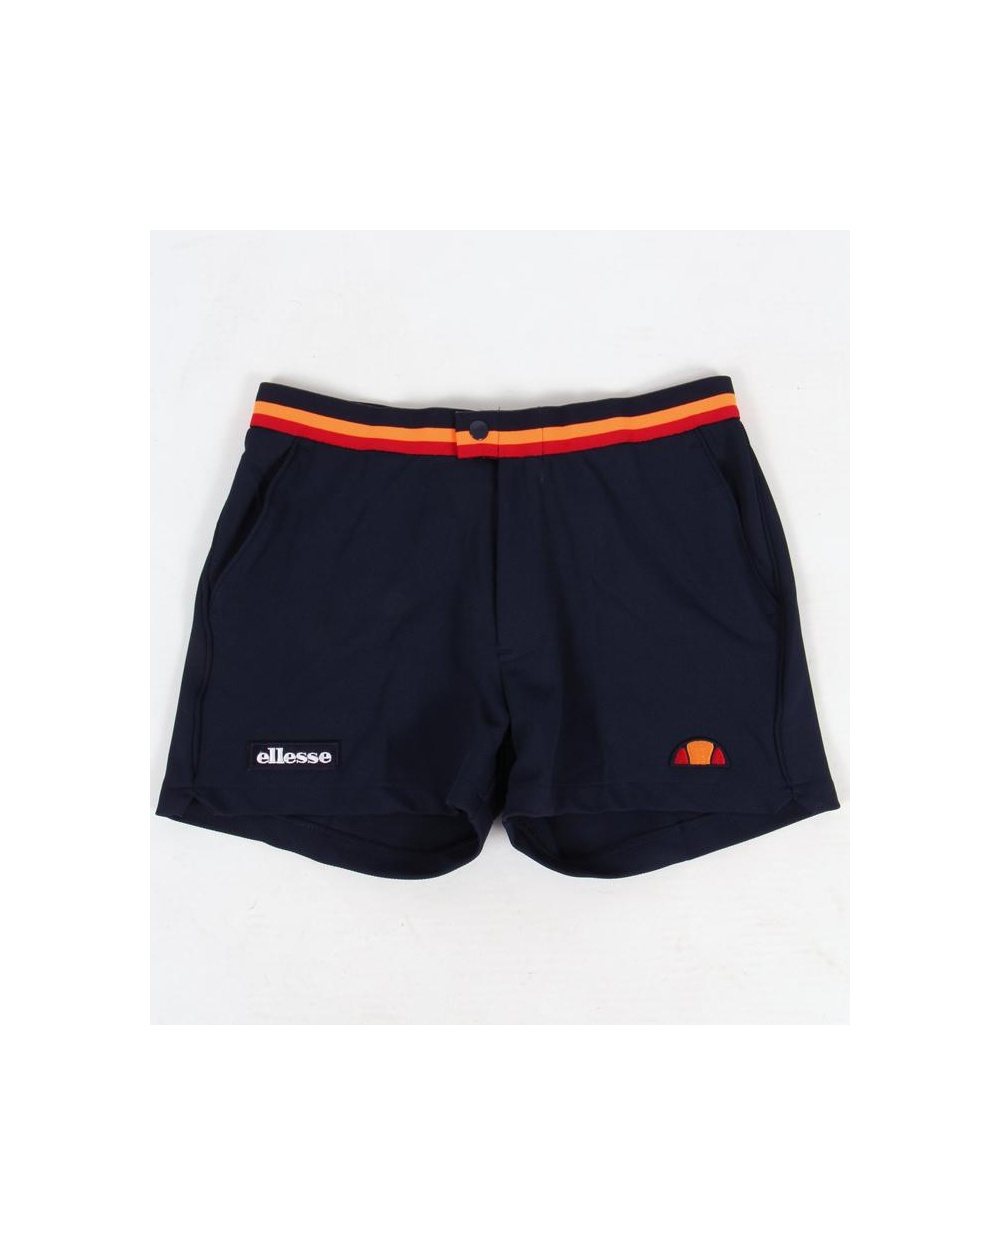 ef06ddb22c16 Ellesse Elite Shorts Navy - ellesse heritage elite shorts in navy blue